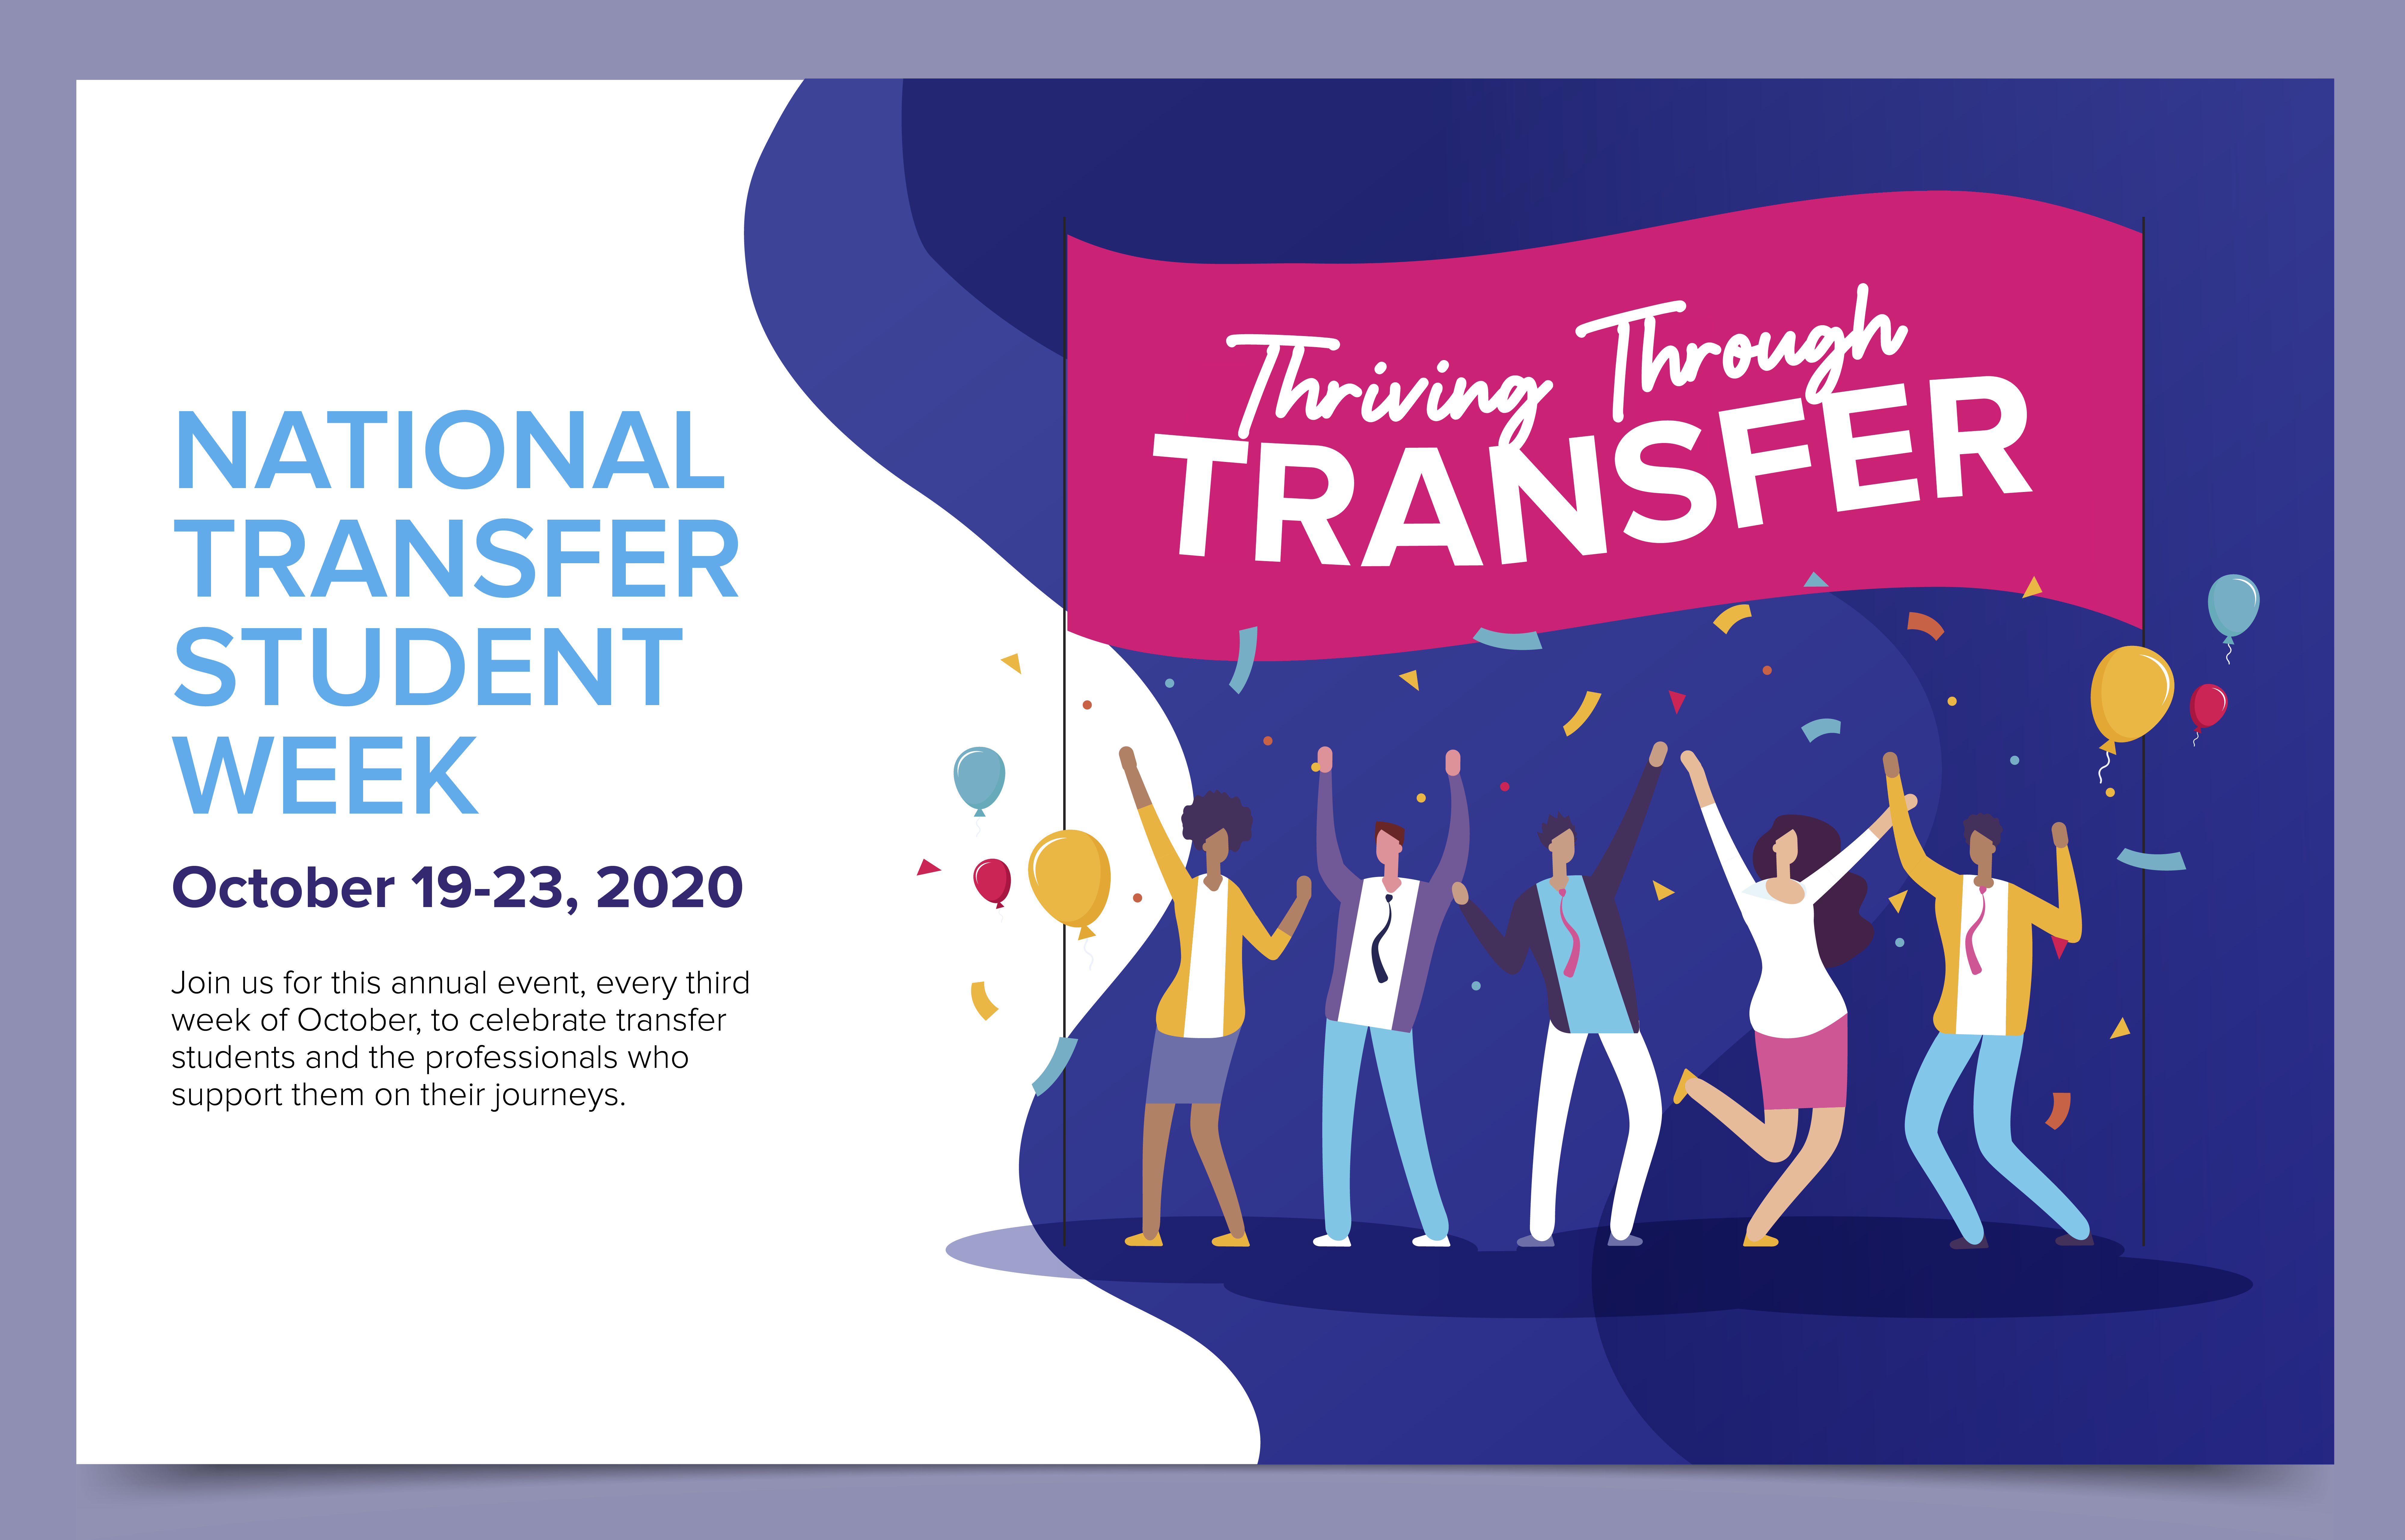 Thriving Through Transfers: Joing us for this annual event, every third week of October, to celebrate transfer students and the professionals who support them on their journeys.